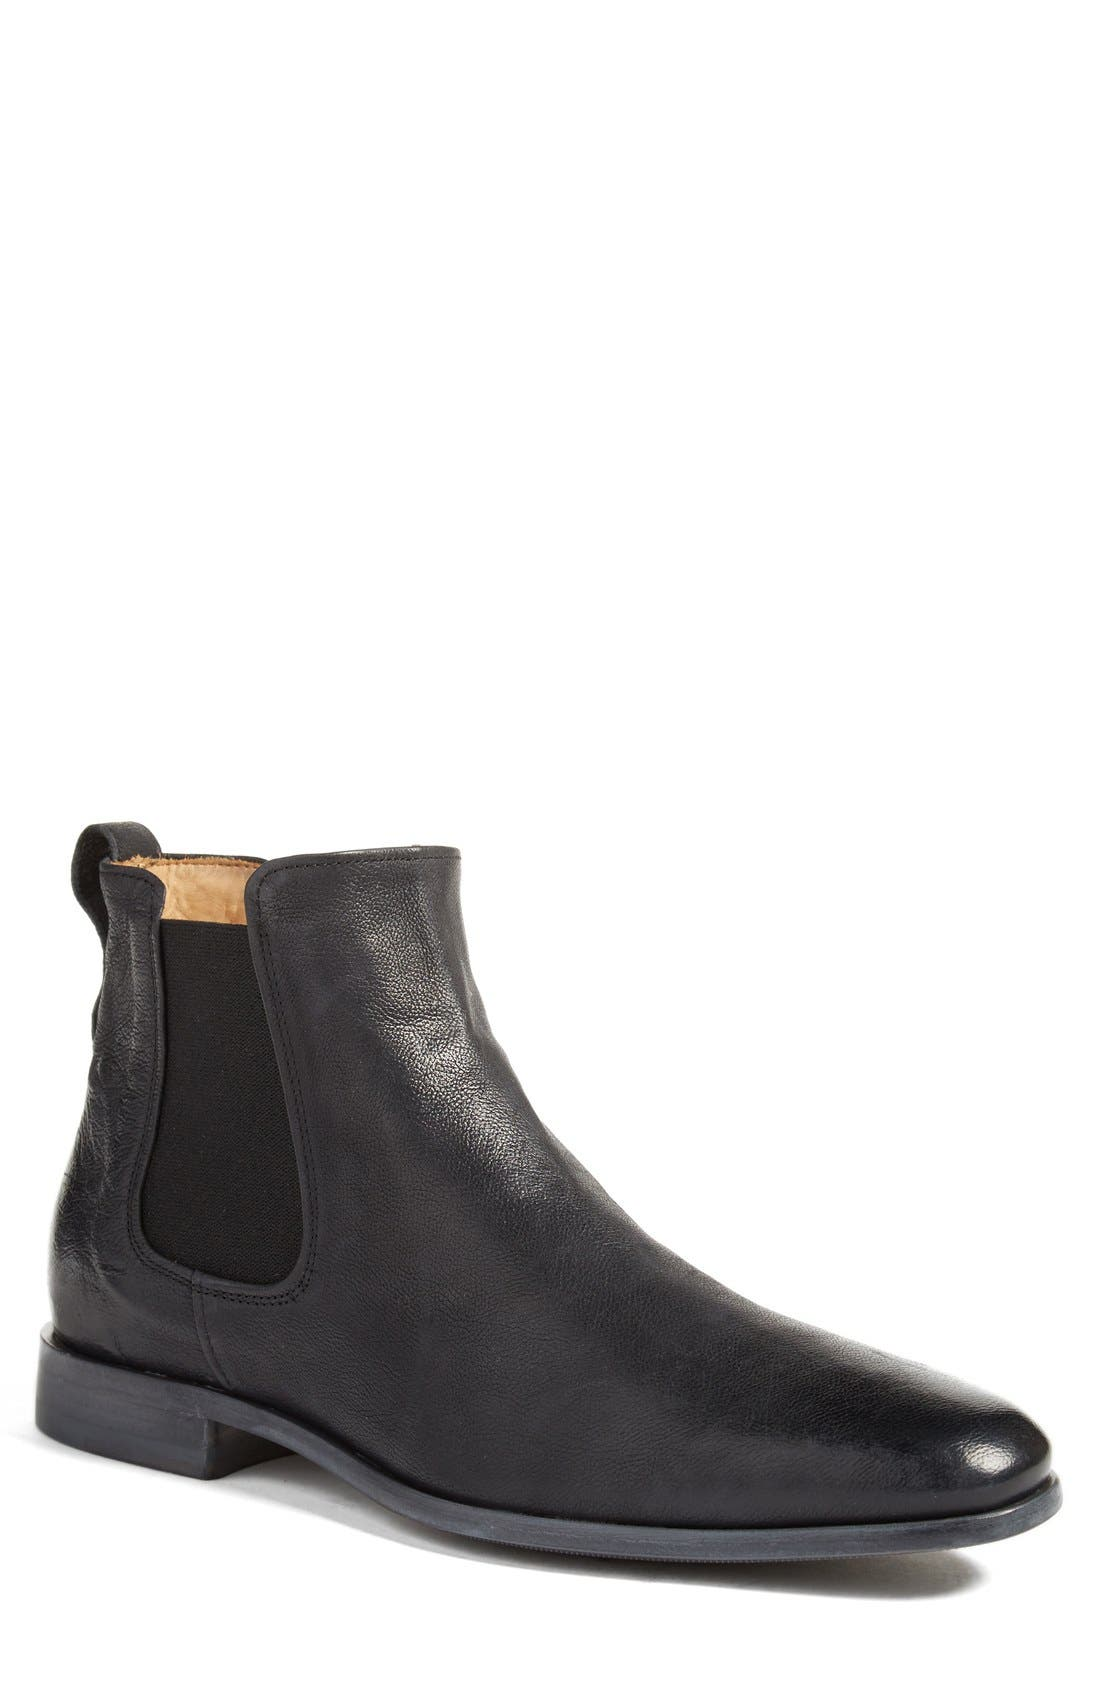 Arthur Chelsea Boot,                         Main,                         color,